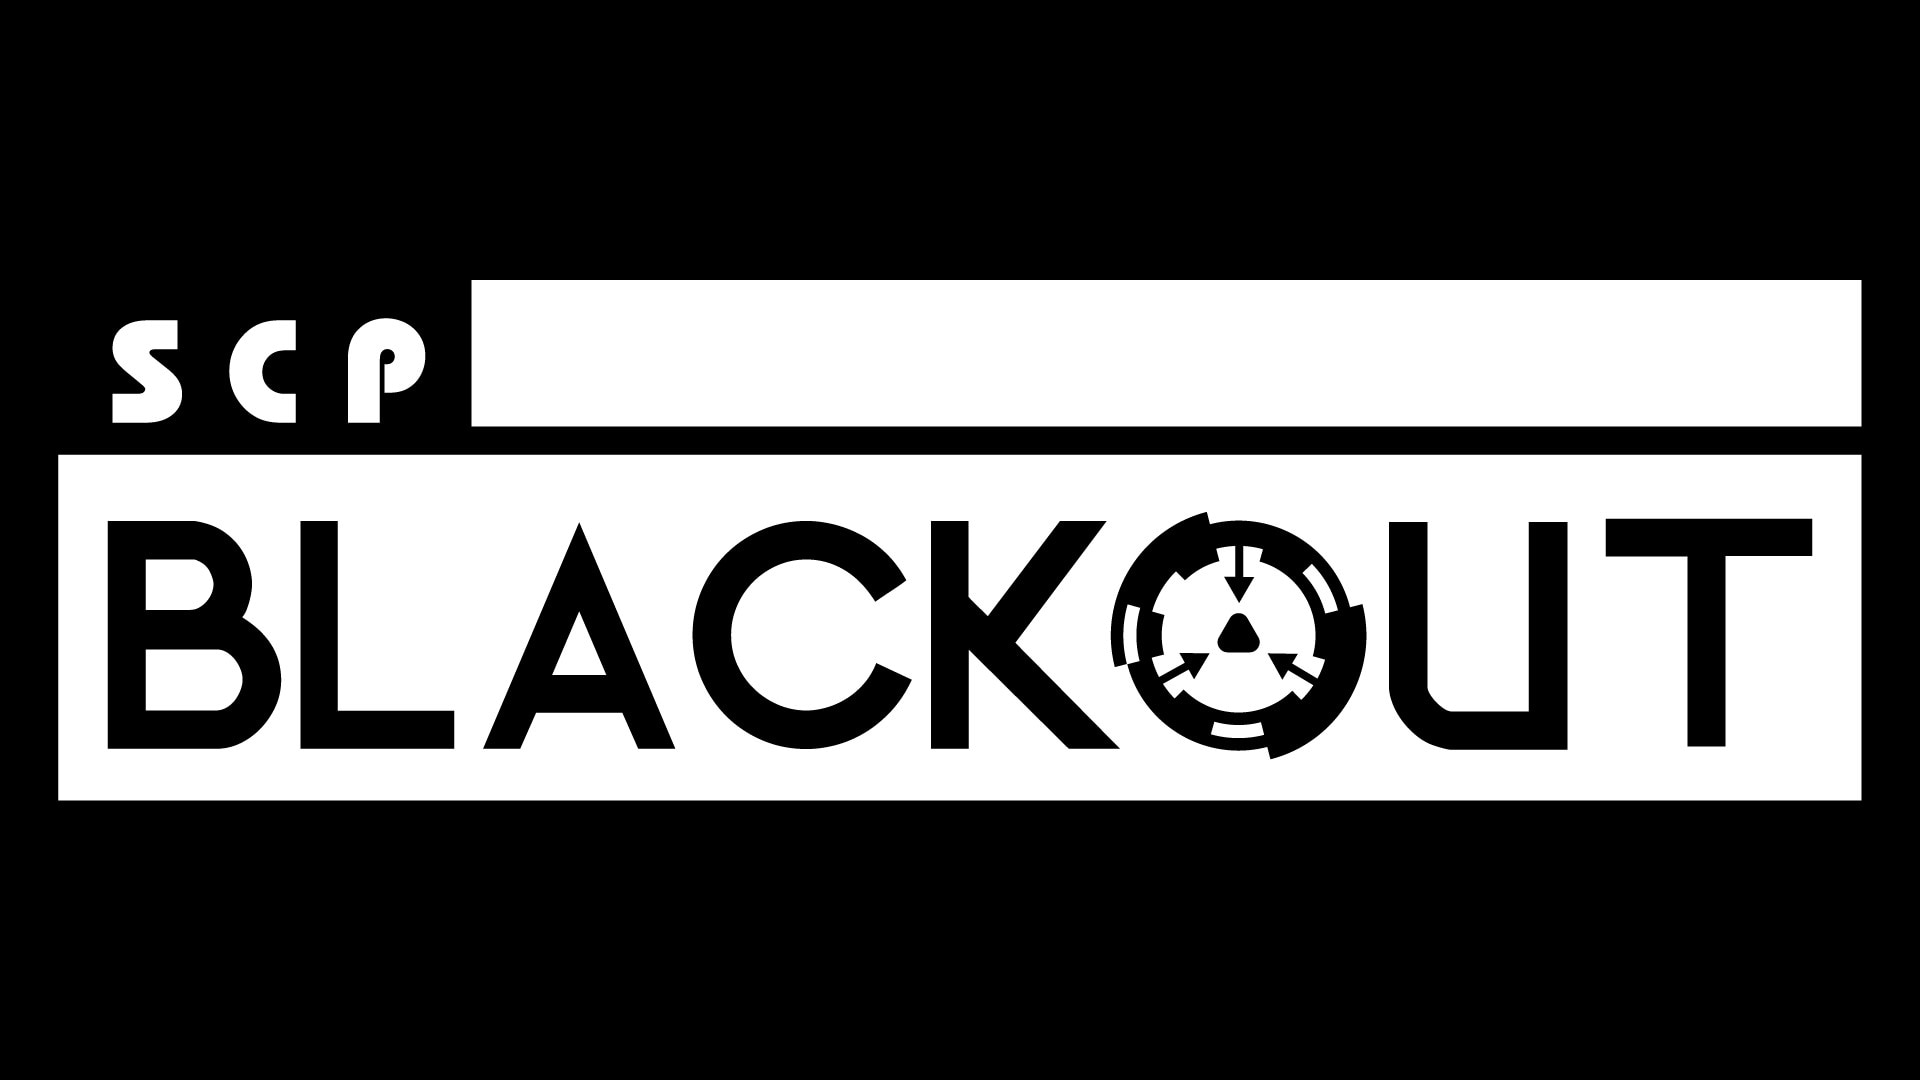 scp blackout fullInvert - [PAX SOUTH] SCP: BLACKOUT IS A LABOR OF LOVE THAT EMBODIES THE SCP SPIRIT